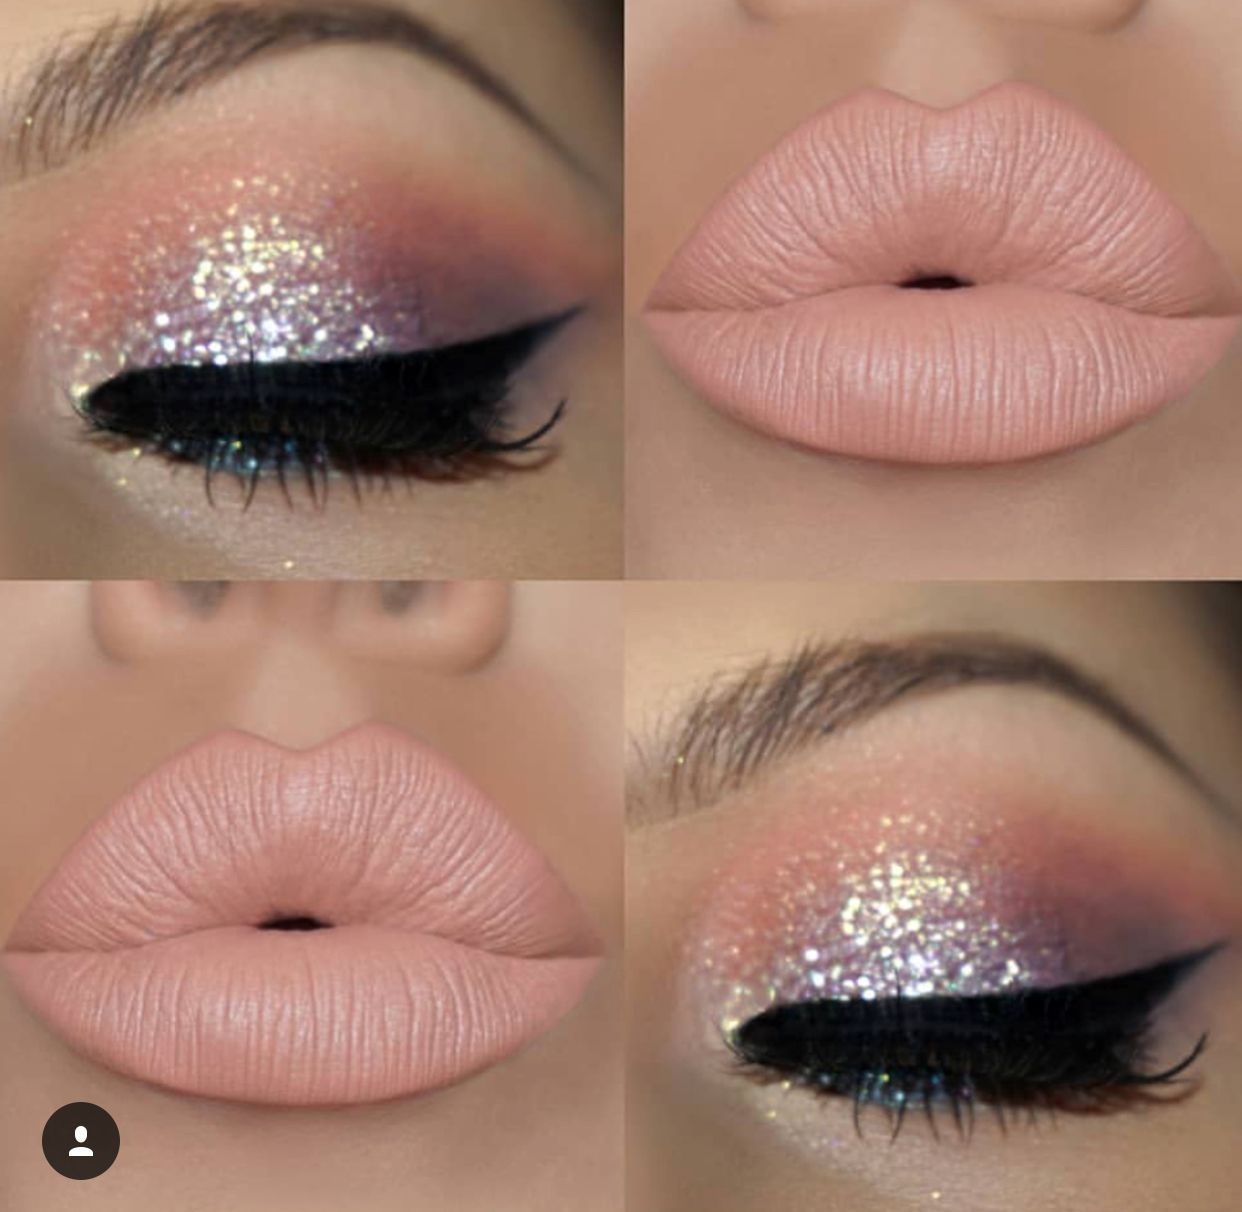 Yes. Light pinks and sparkles. Birthday makeup looks